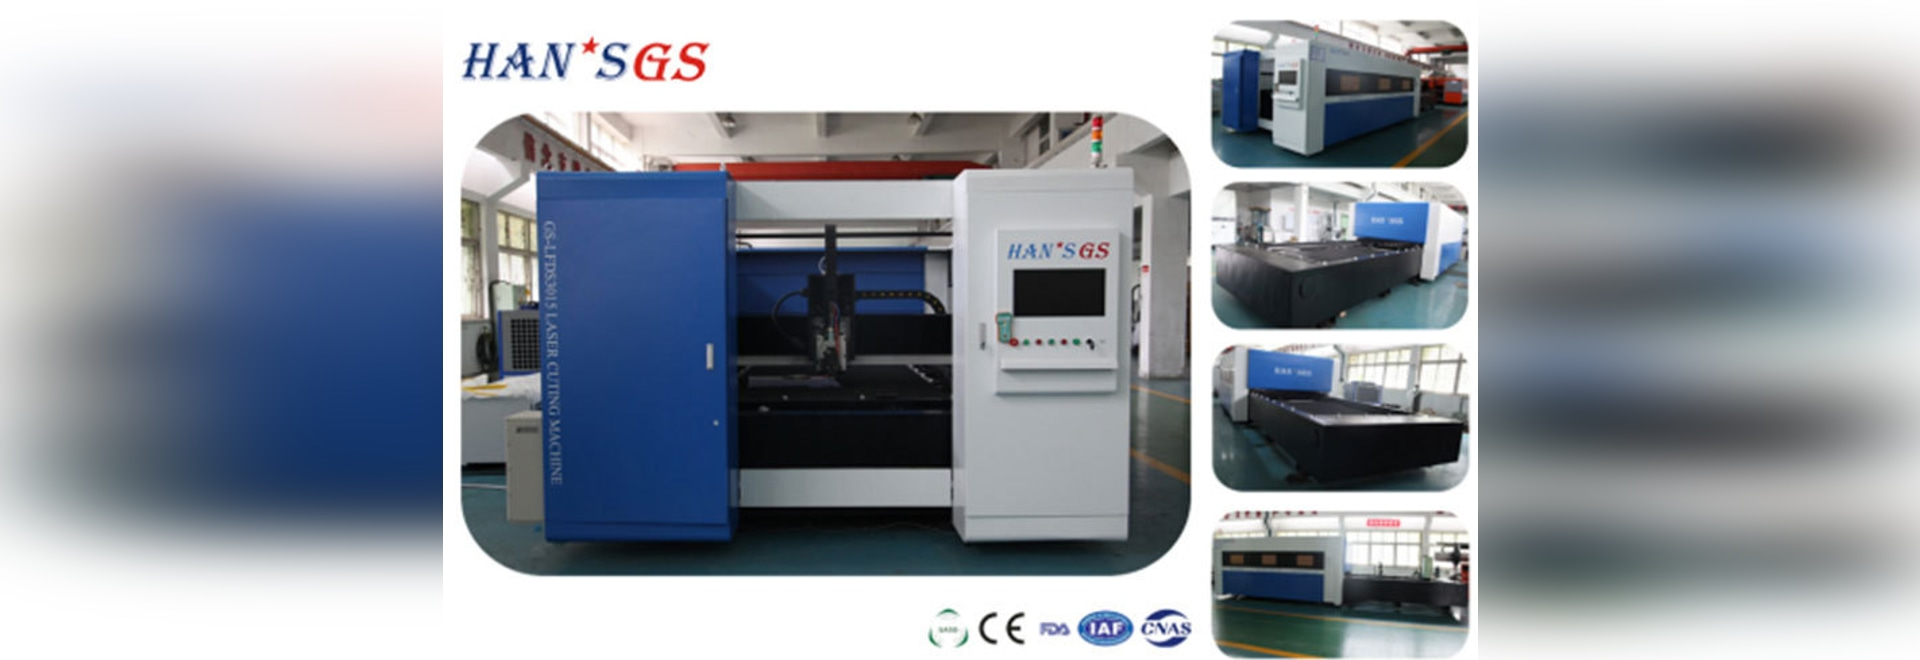 HANS GS Fiber Laser Cutting Machine Gantry structure of high-speed stable and reliable